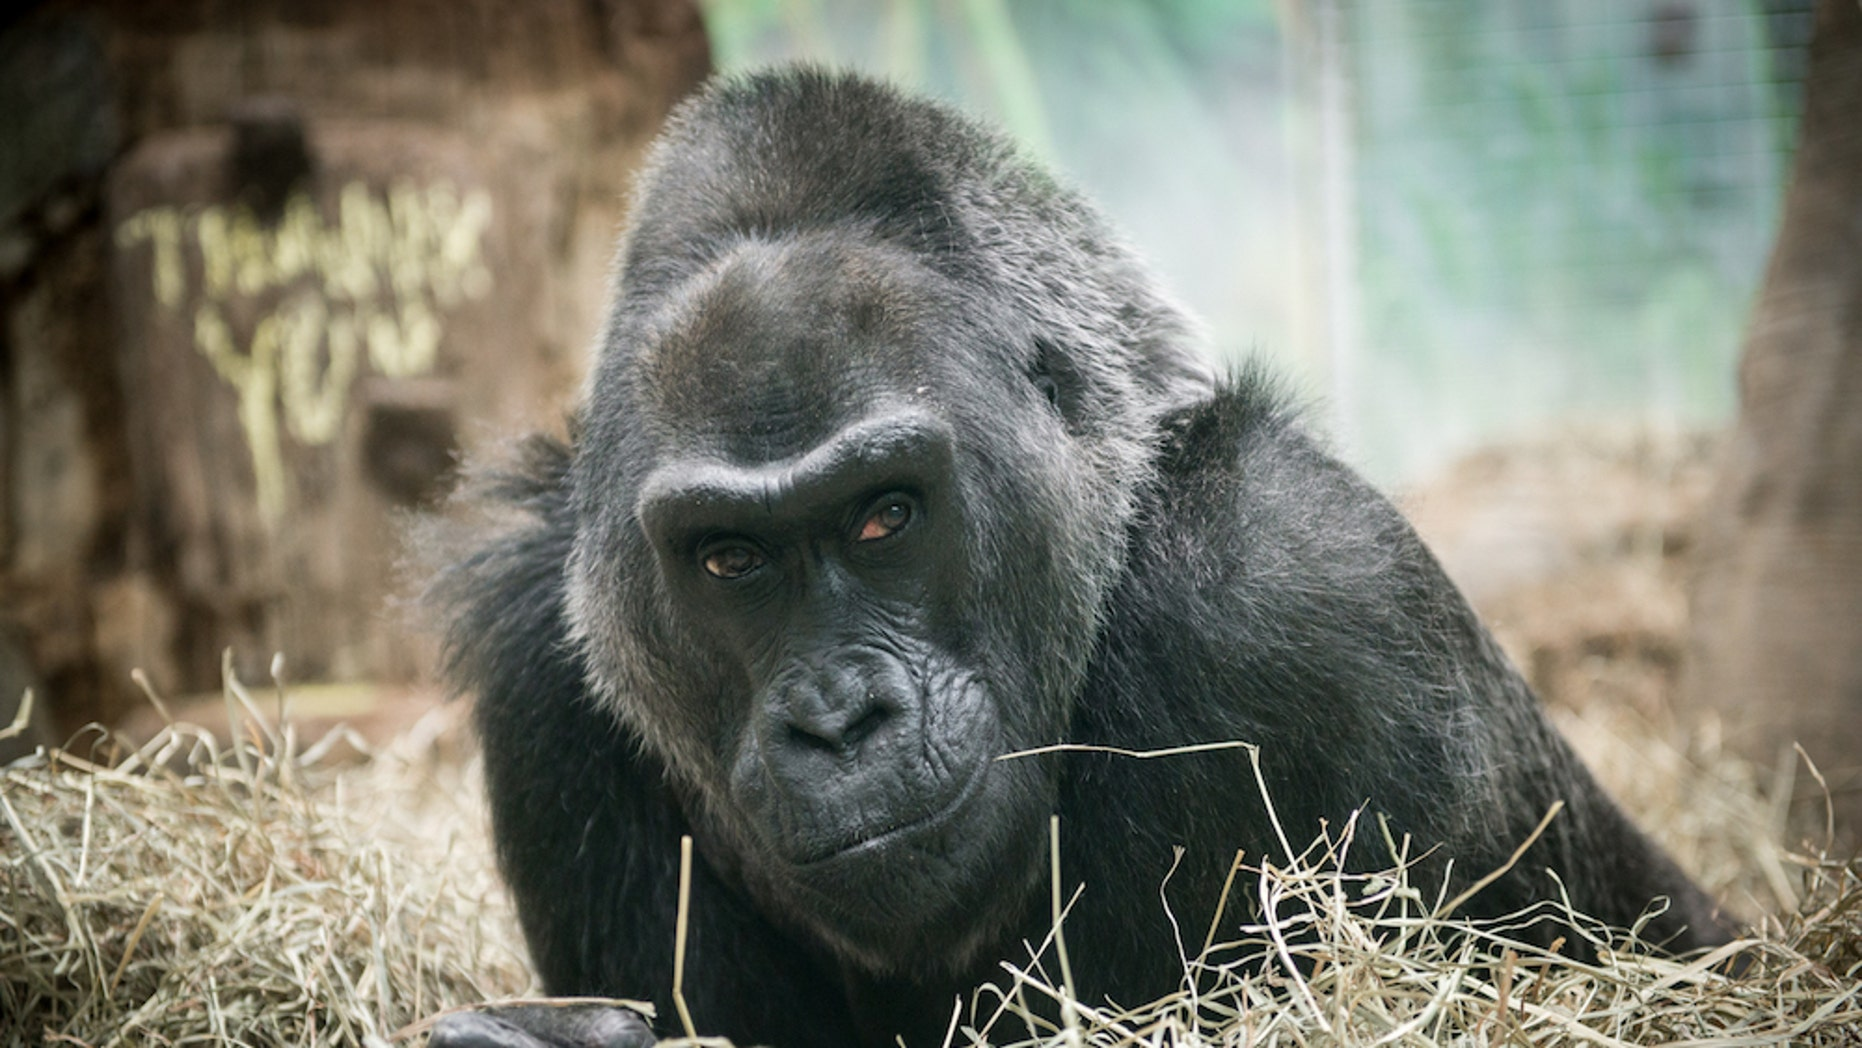 Colo the gorilla, the world's oldest known gorilla, died peacefully in her sleep on Jan. 17. She was 60 years old. Here, a photo of Colo taken in 2015.